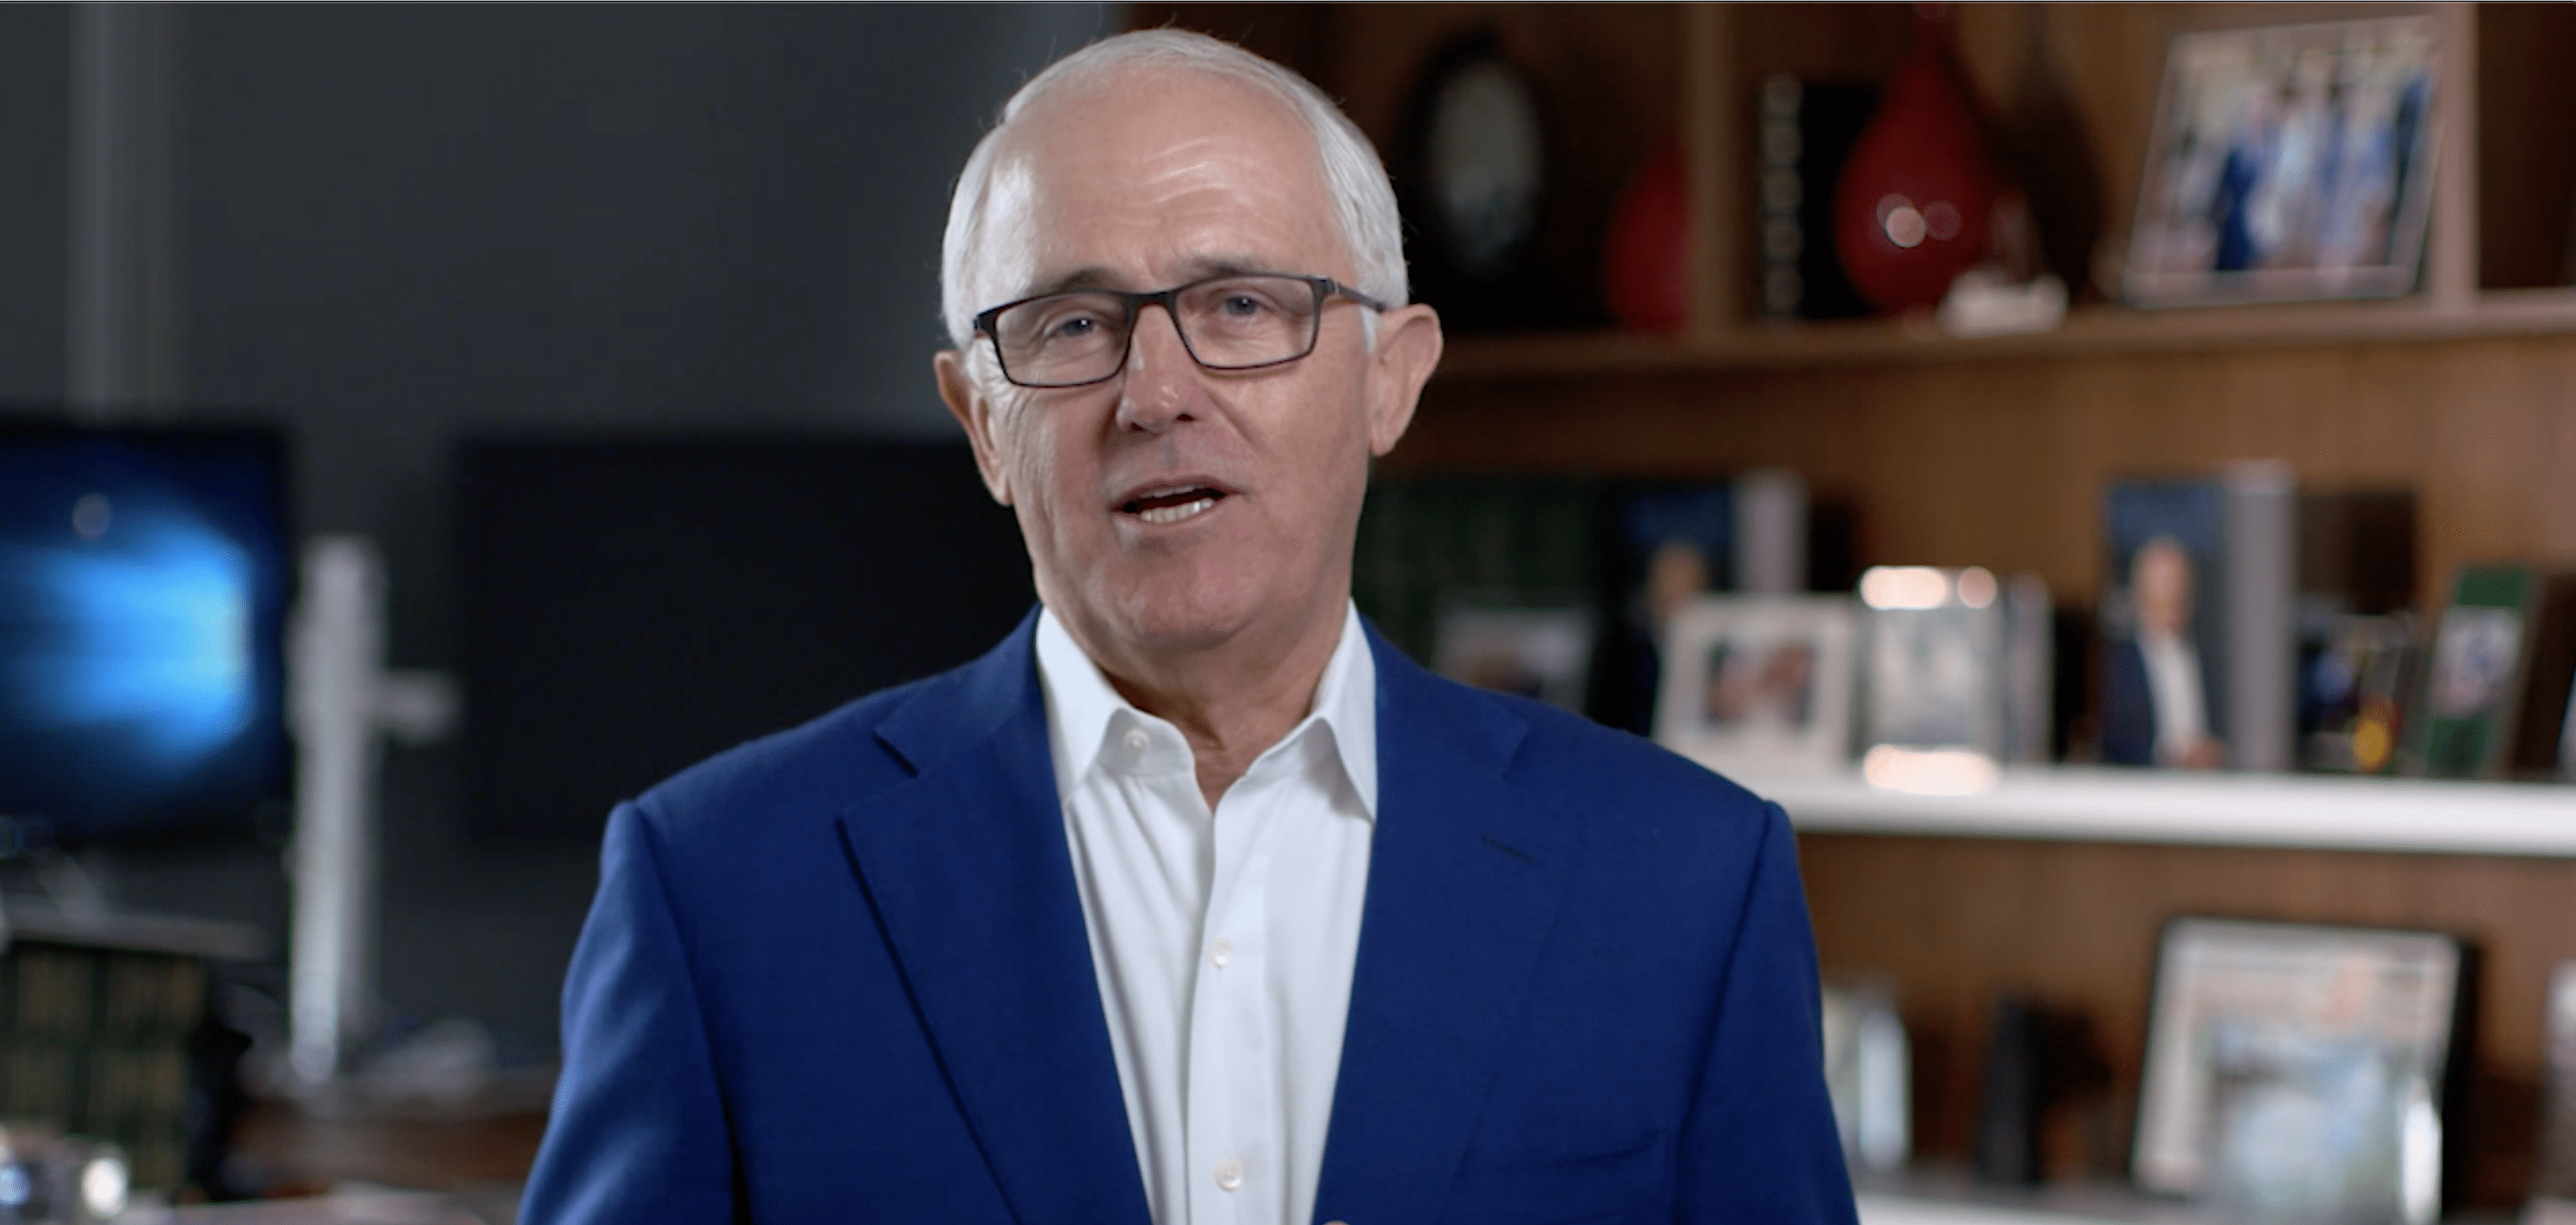 former Australian Prime Minister Malcolm Turnbull's investment company, Turnbull & Partners, has made an investment in Dragos, an industrial cyber security company